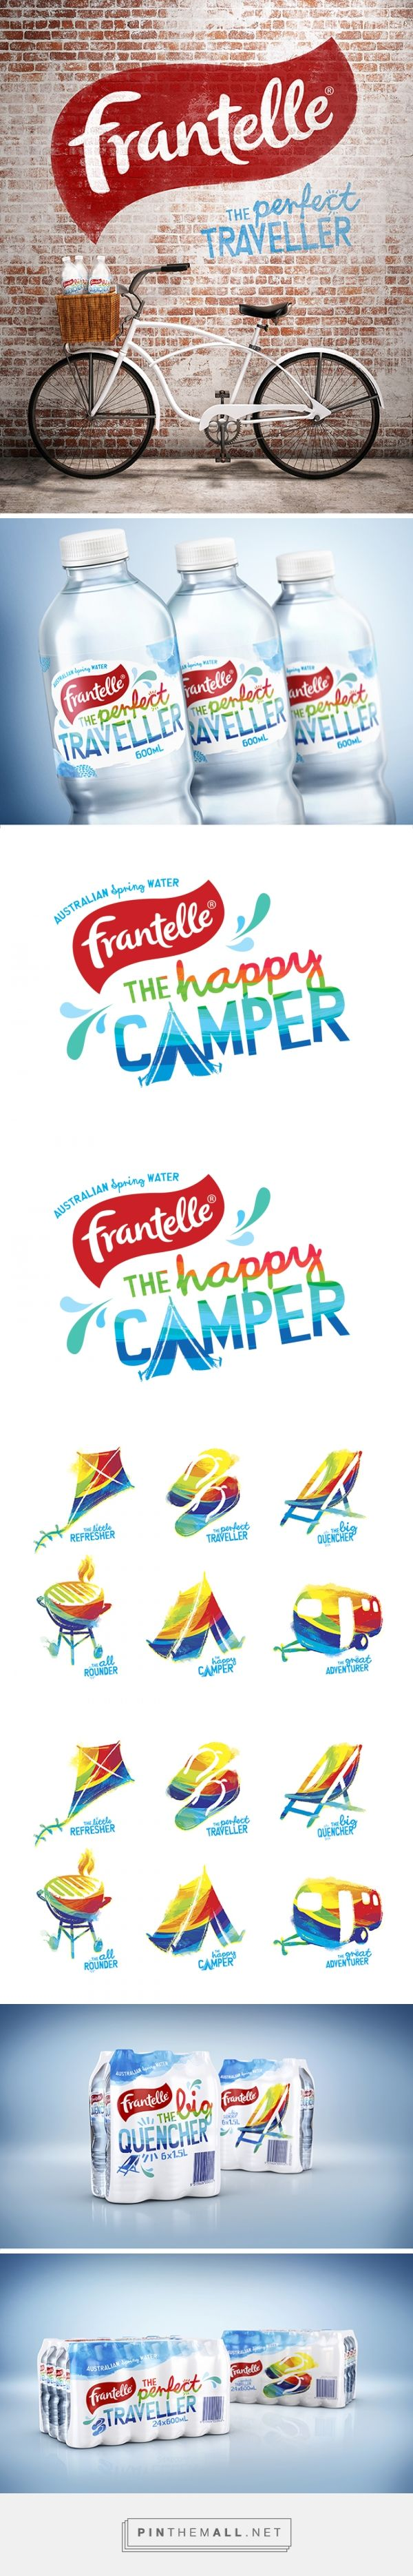 PROJECT - Frantelle Spring Water — Asprey Creative - created via https://pinthemall.net